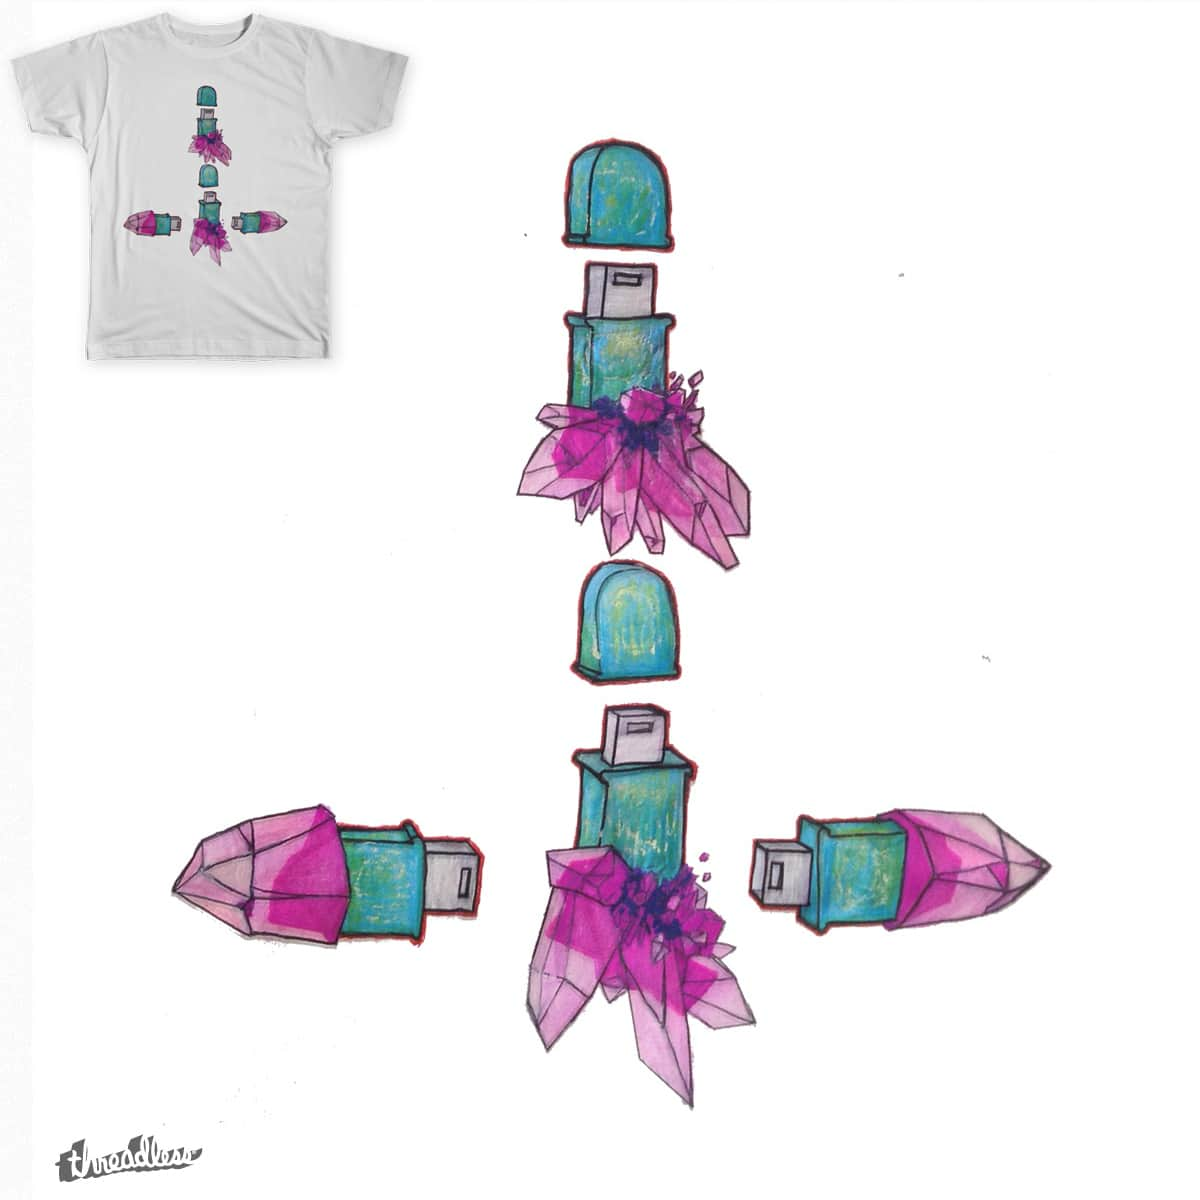 Inverted Crystal USB Cross by artbutt on Threadless